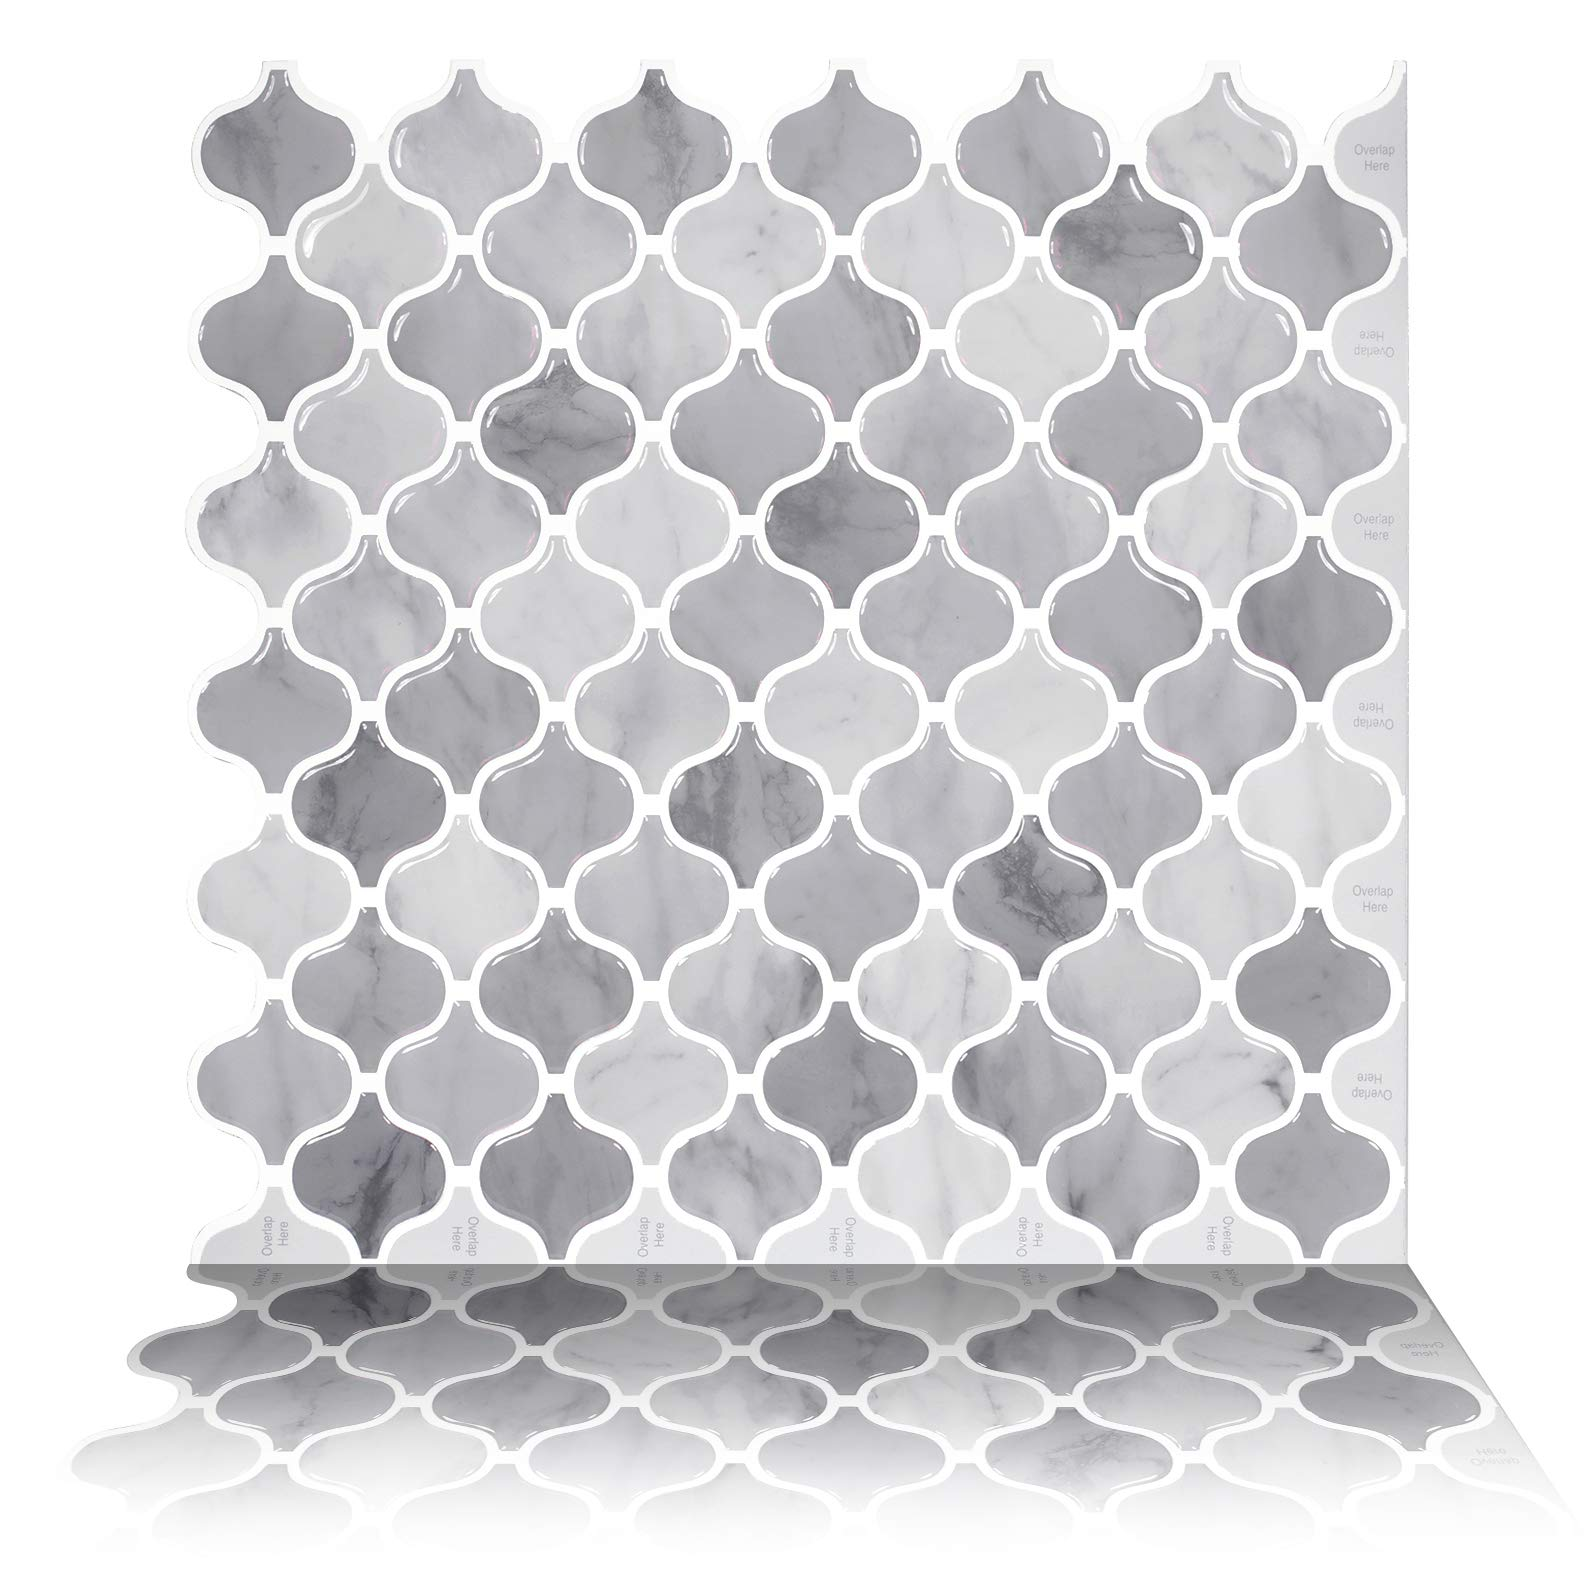 Tic Tac Tiles 10-Sheet 12'' x 12'' Peel and Stick Self Adhesive Removable Stick On Kitchen Backsplash Bathroom 3D Wall Sticker Wallpaper Tiles in Damask Marble by Tic Tac Tiles